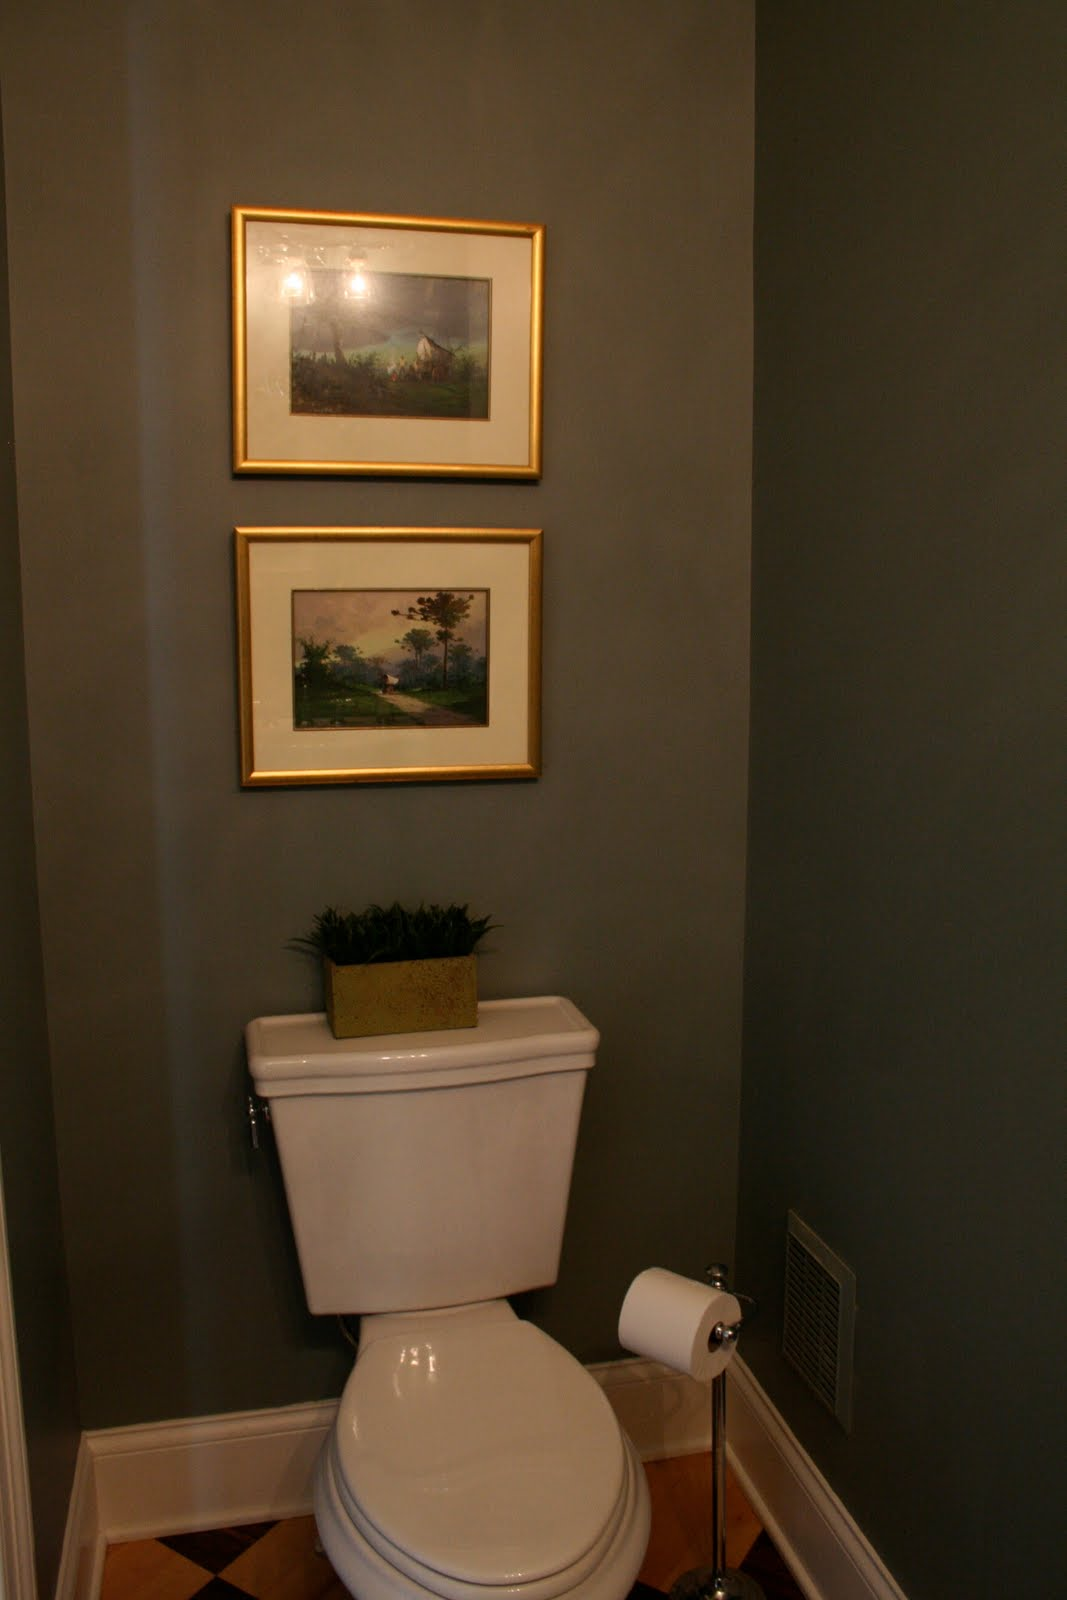 Design dump house 5 powder room before after for Small toilet room design